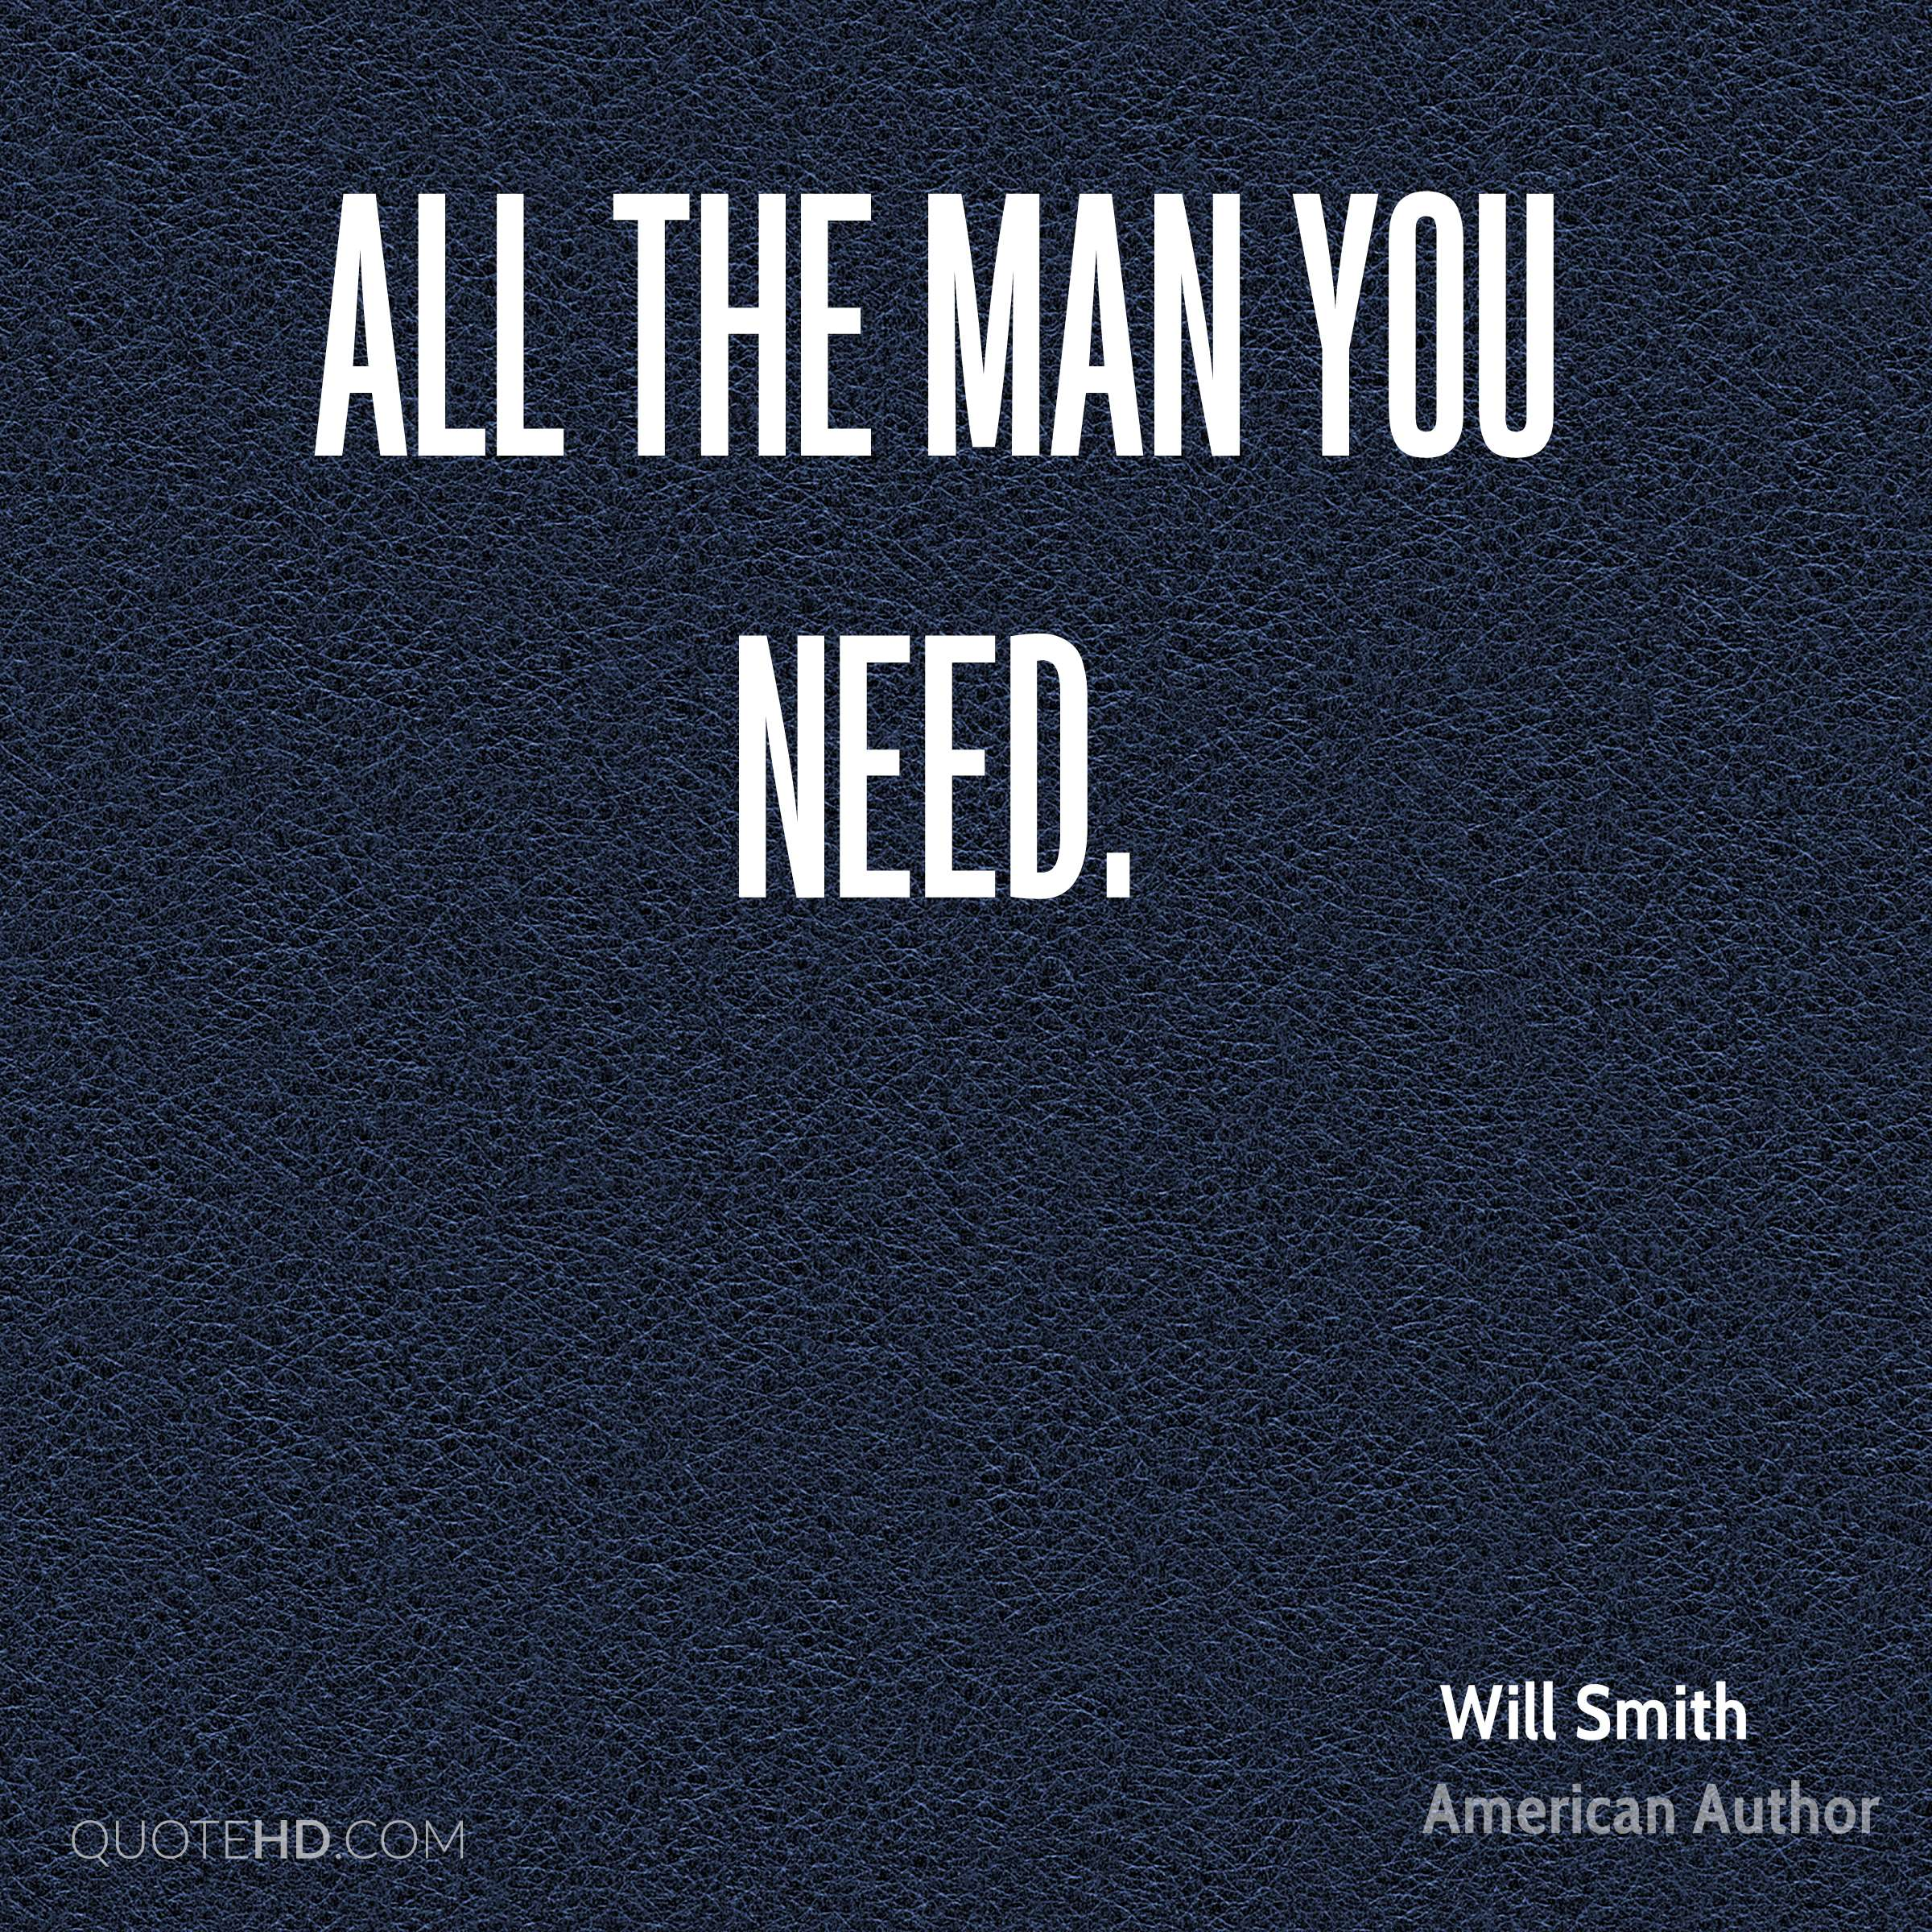 All The Man You Need.